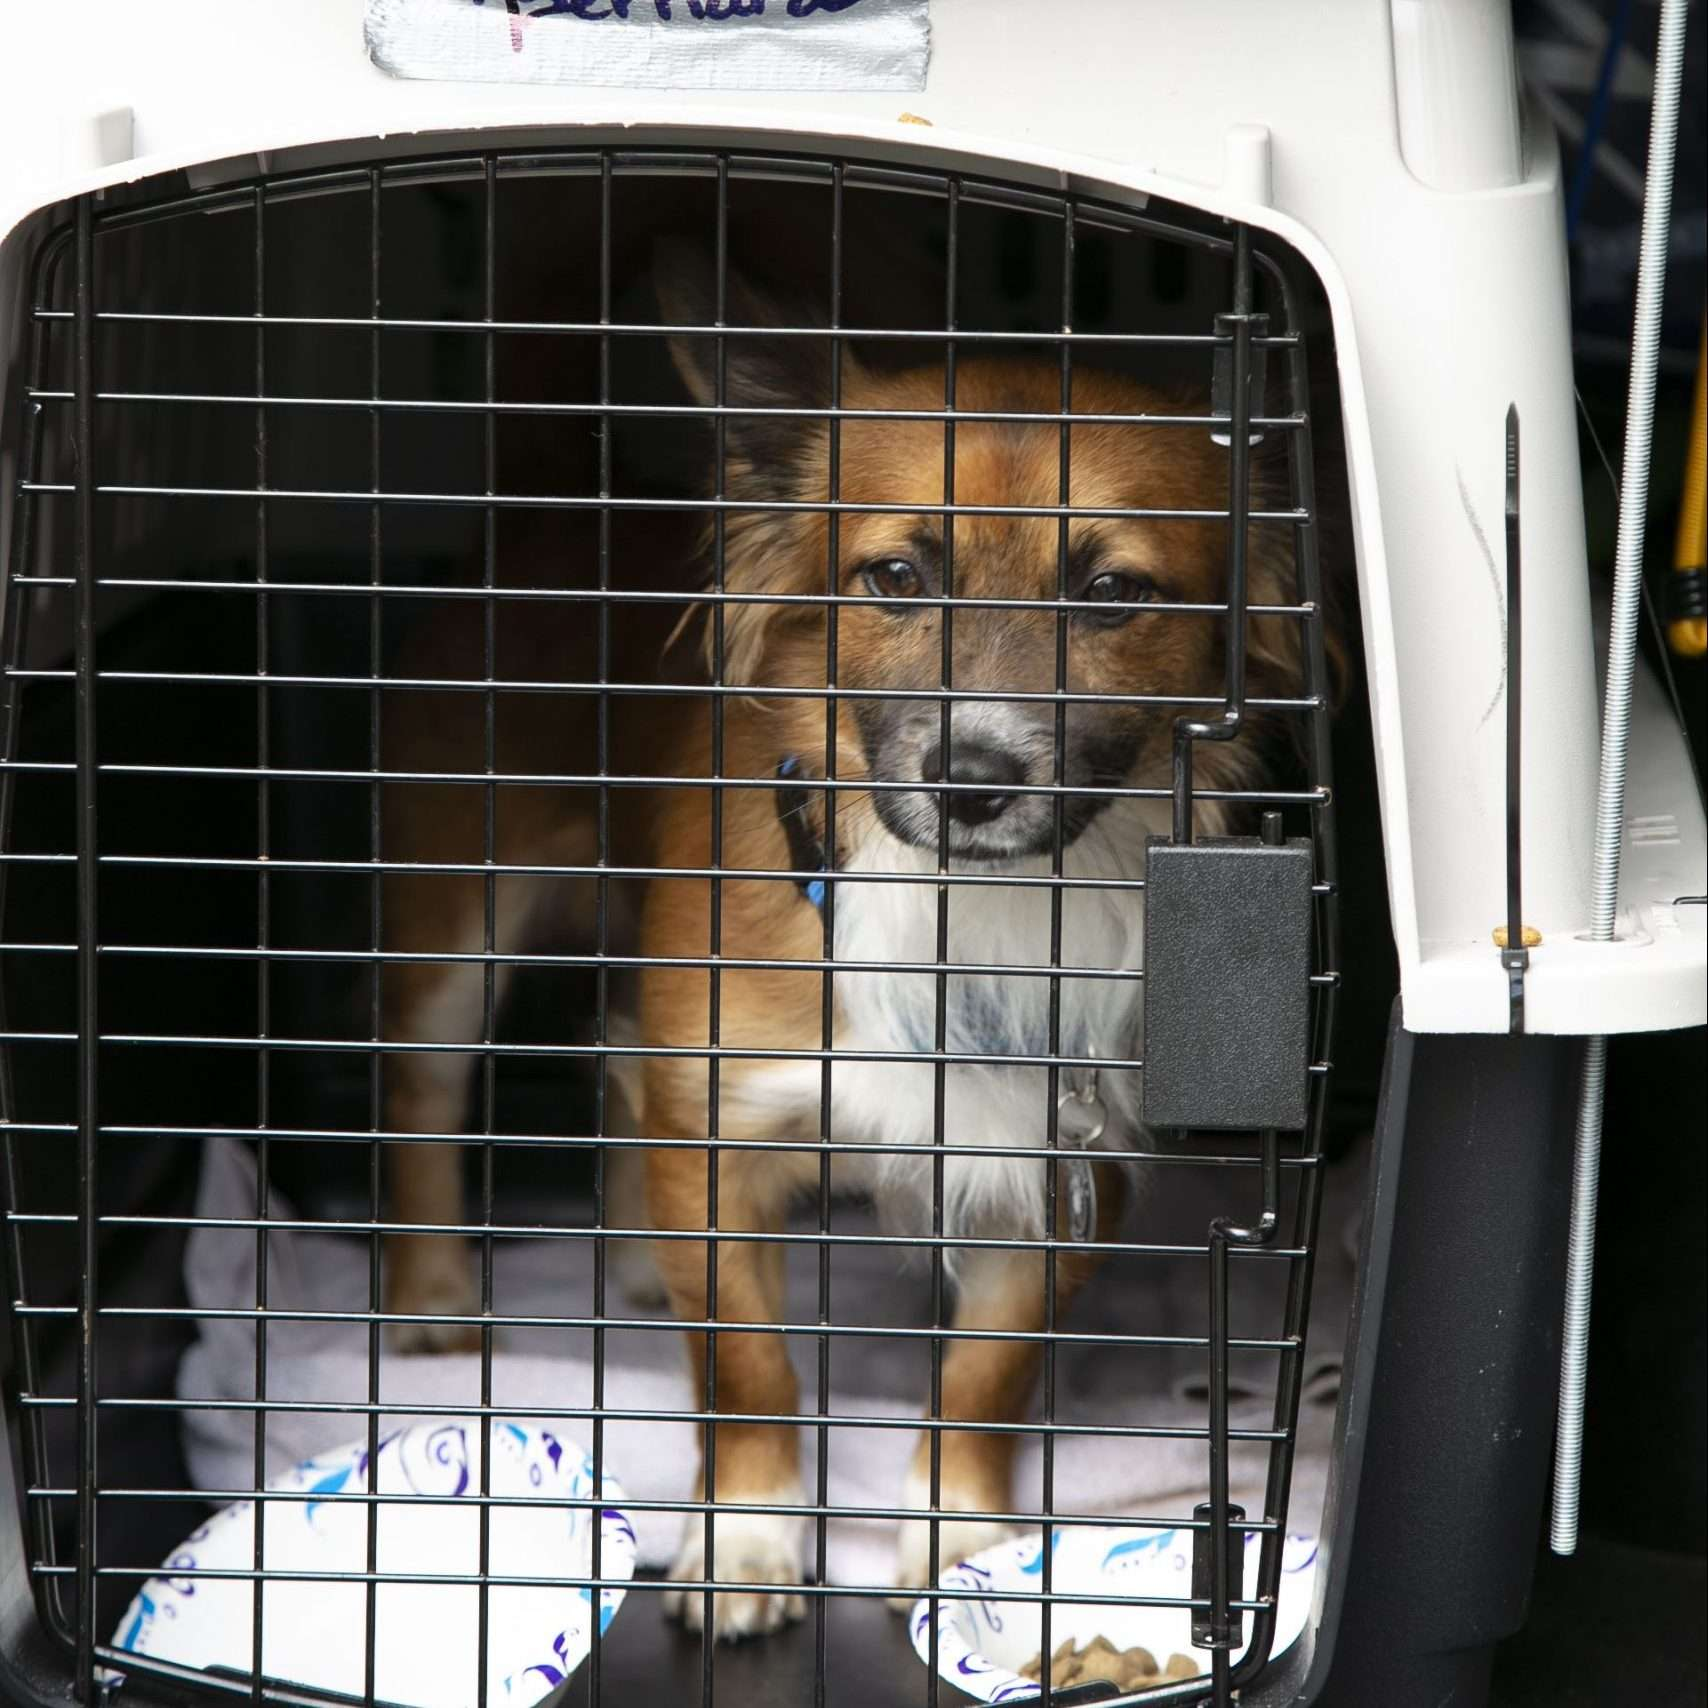 A beautiful tricolor dog looks out from the inside of a plastic crate